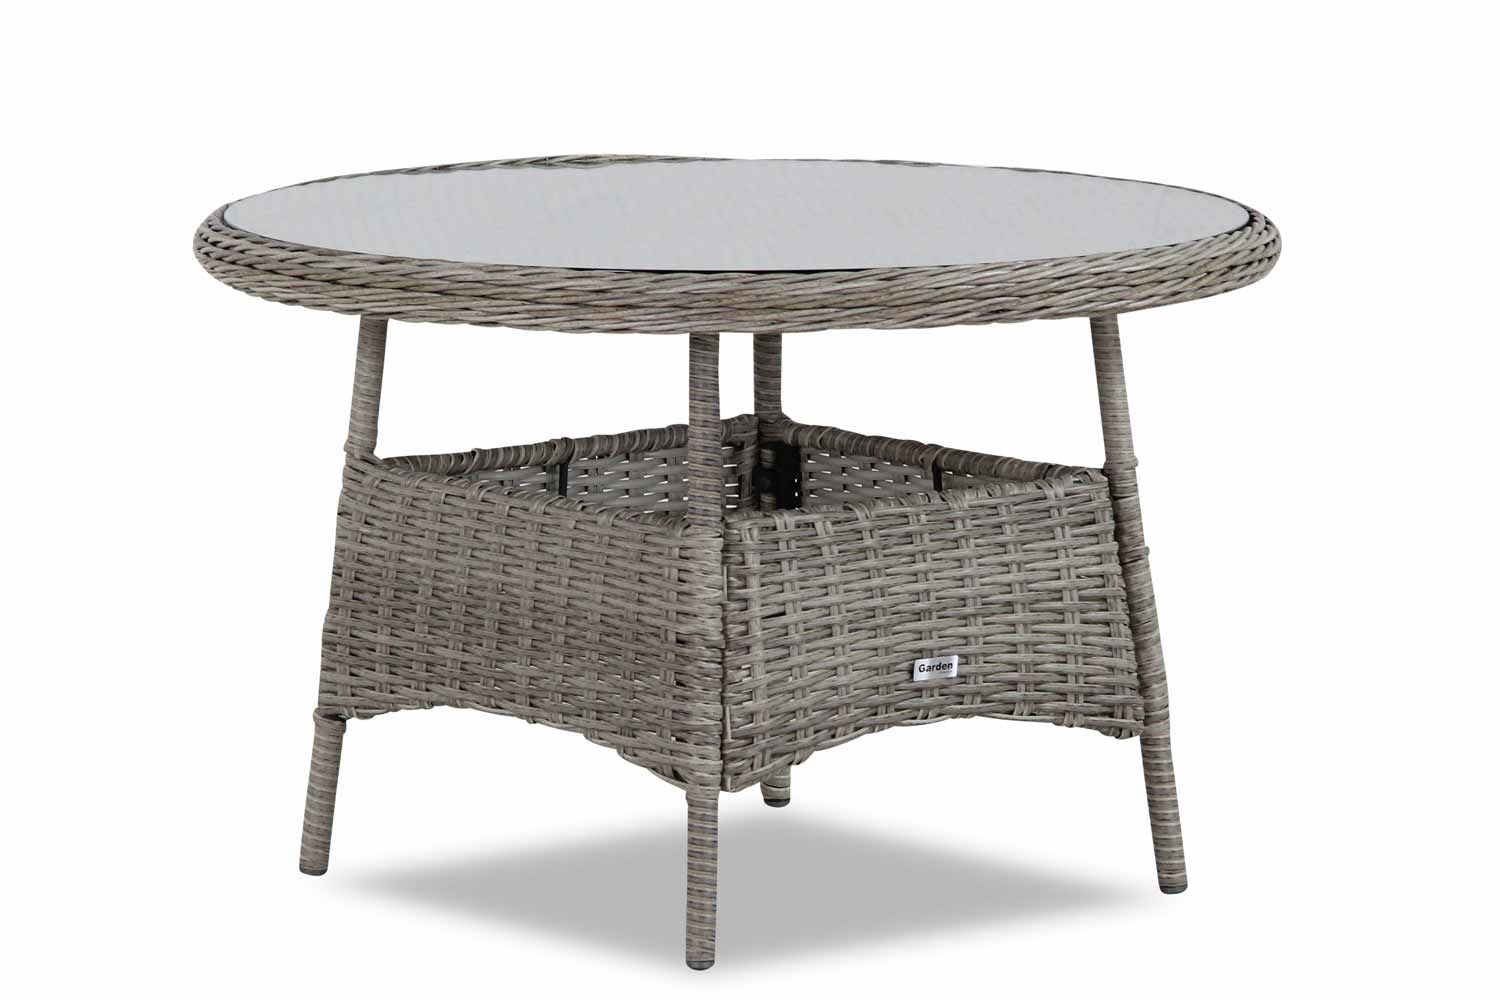 Garden Collections Risaralda lounge/dining tafel rond